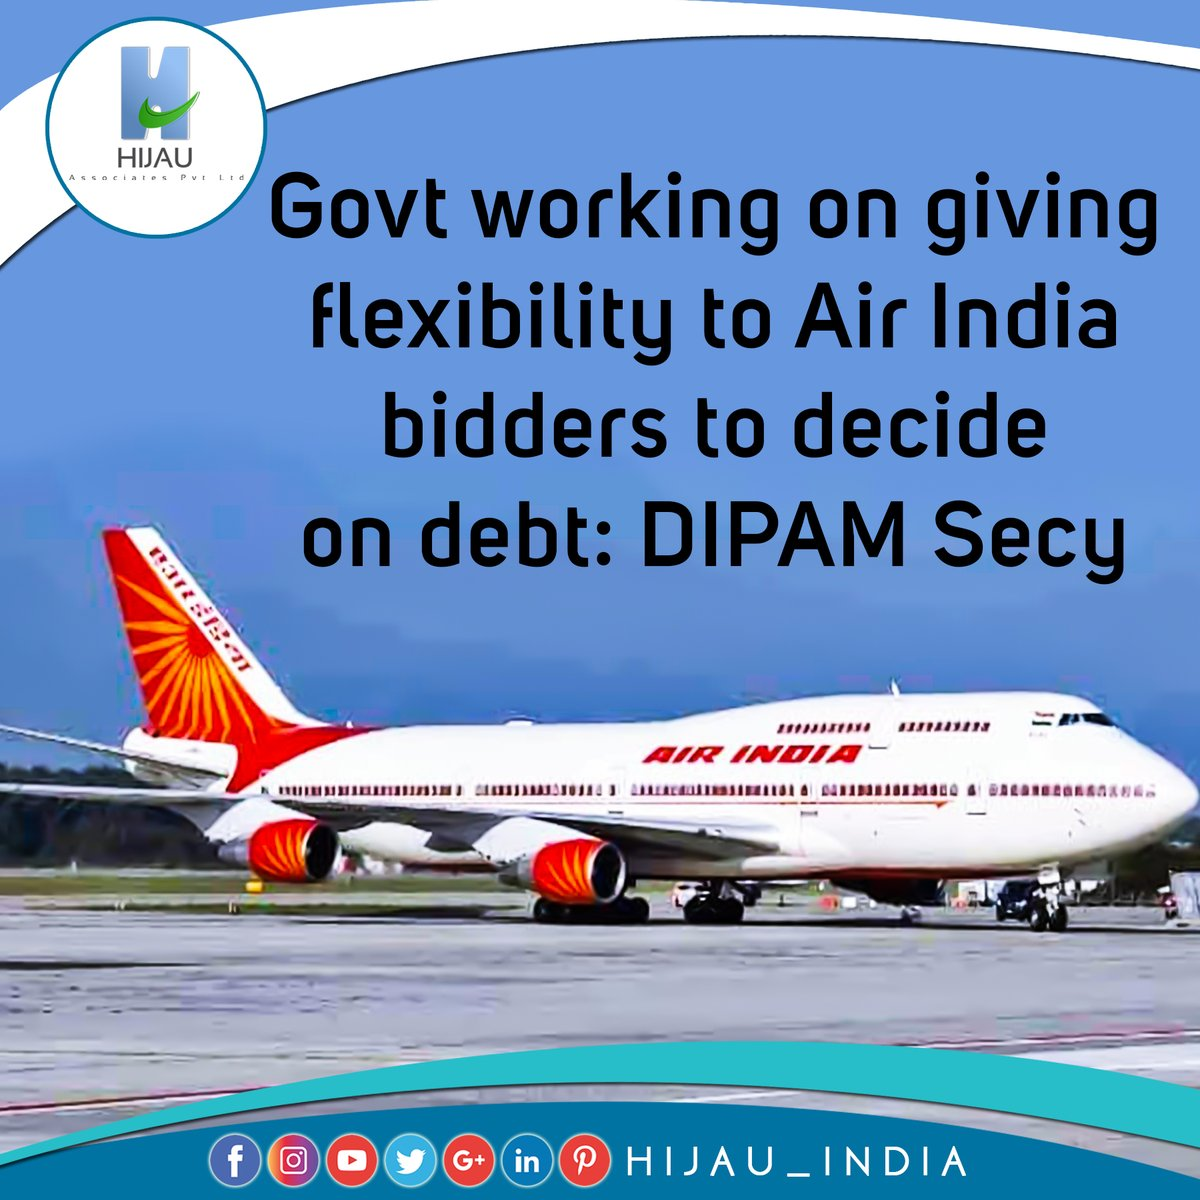 Govt working on giving flexibility to Air India bidders to decide on debt: DIPAM Secy,  #hijauindia #businessconsultant #businessideas #makeinindia #businessopportunities #newbusiness #india #businessnews #businessnewsupdates #startups #fdi #investindia #services  @airindiain https://t.co/xbWBqsd1Ed